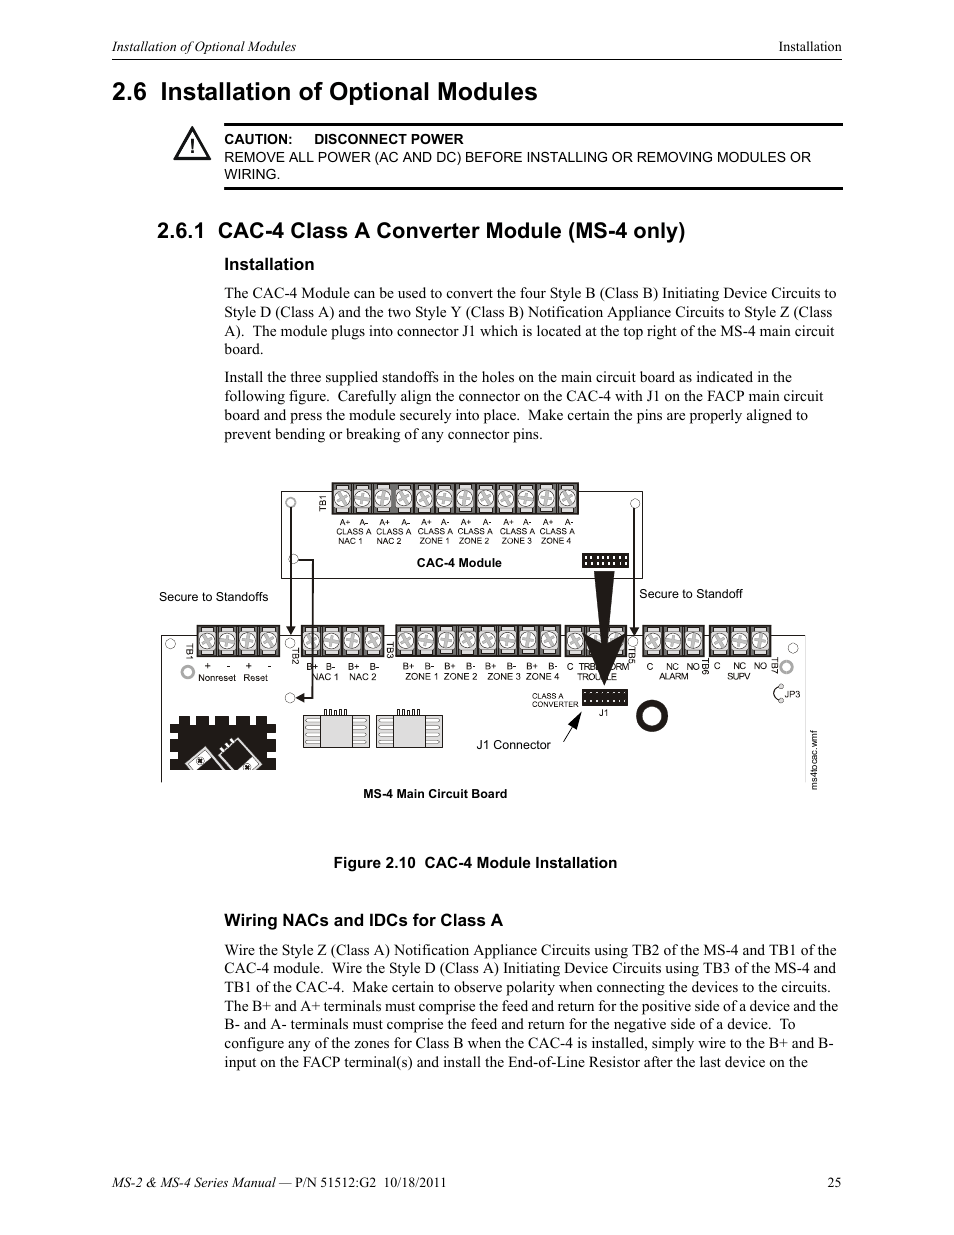 hight resolution of 6 installation of optional modules 1 cac 4 class a converter module ms